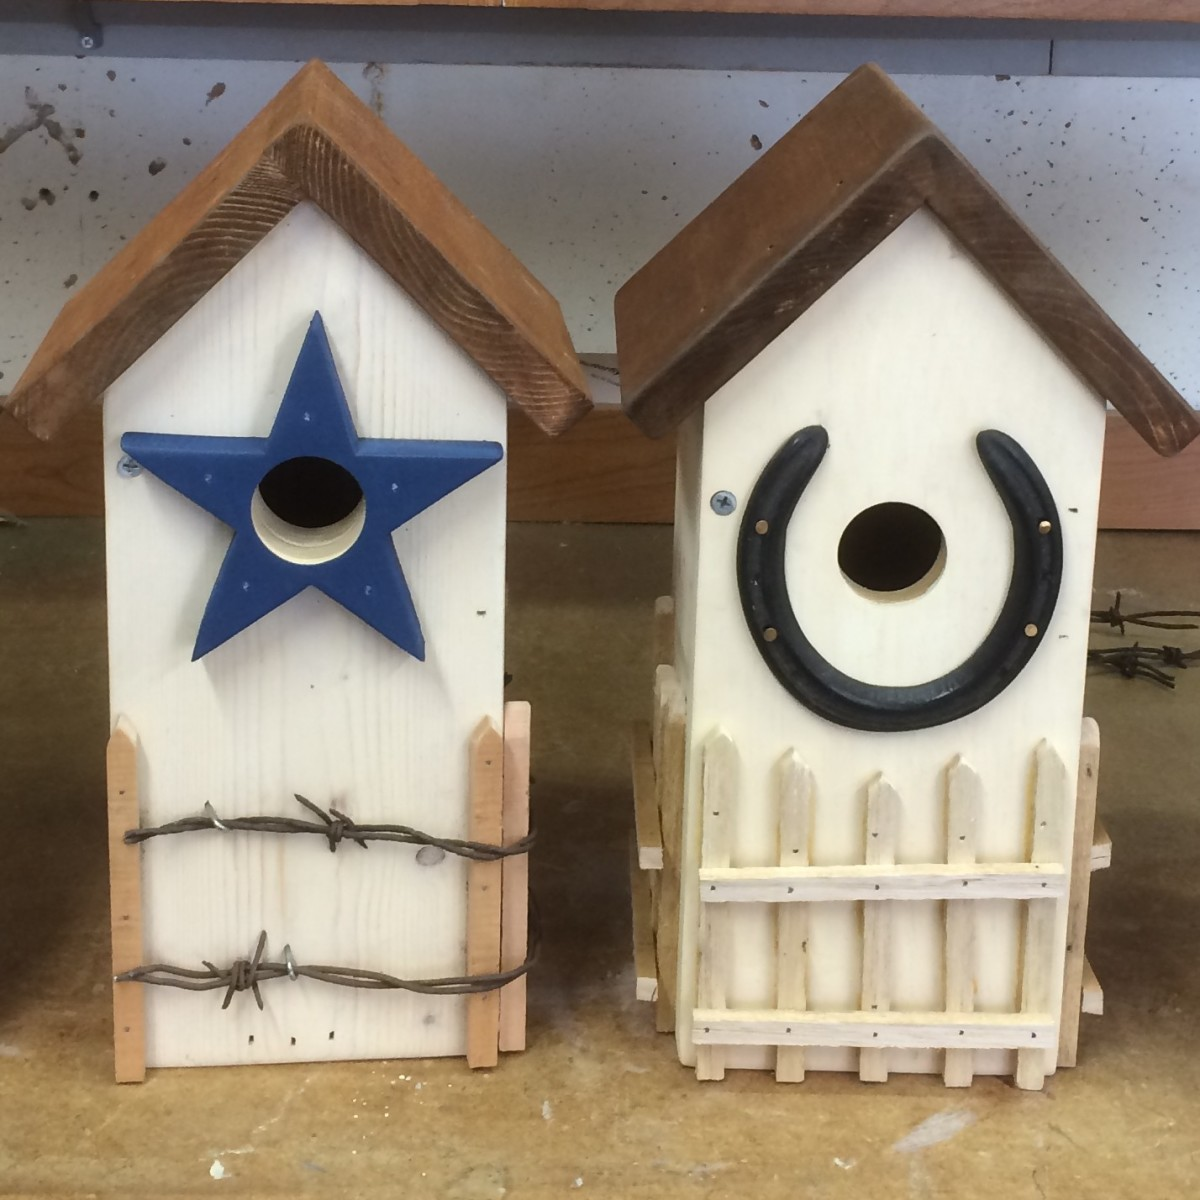 DIY Birdhouse Ideas and Plans